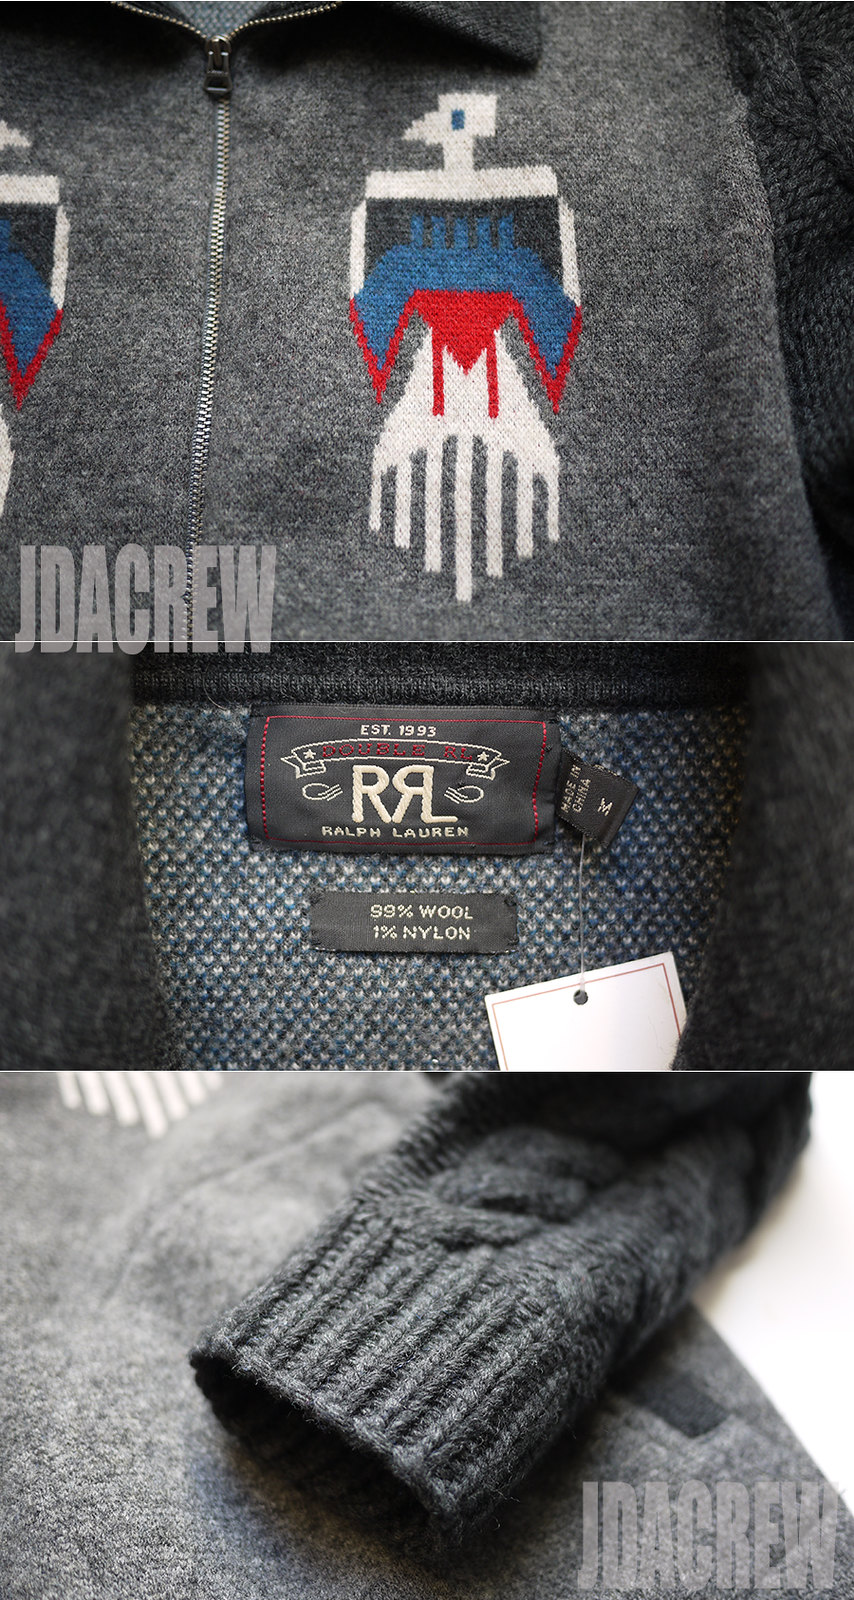 rrl holiday hs3